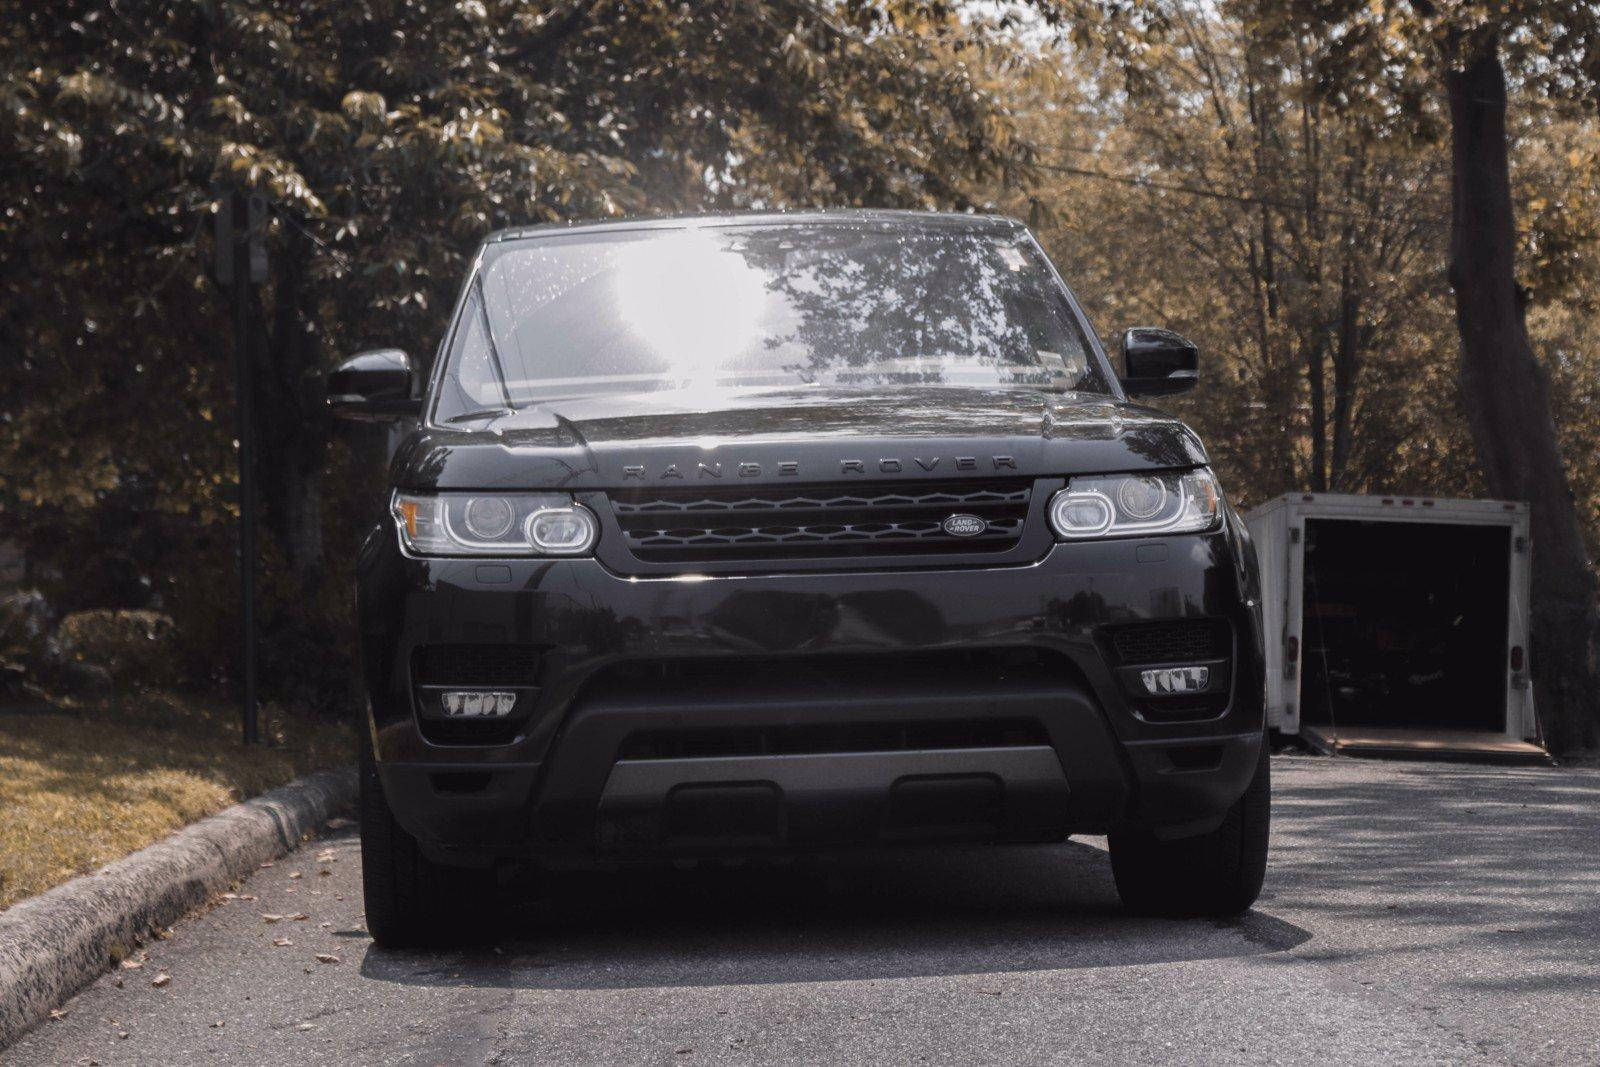 Used-2017-Land-Rover-Range-Rover-Sport-50L-Supercharged-Dynamic